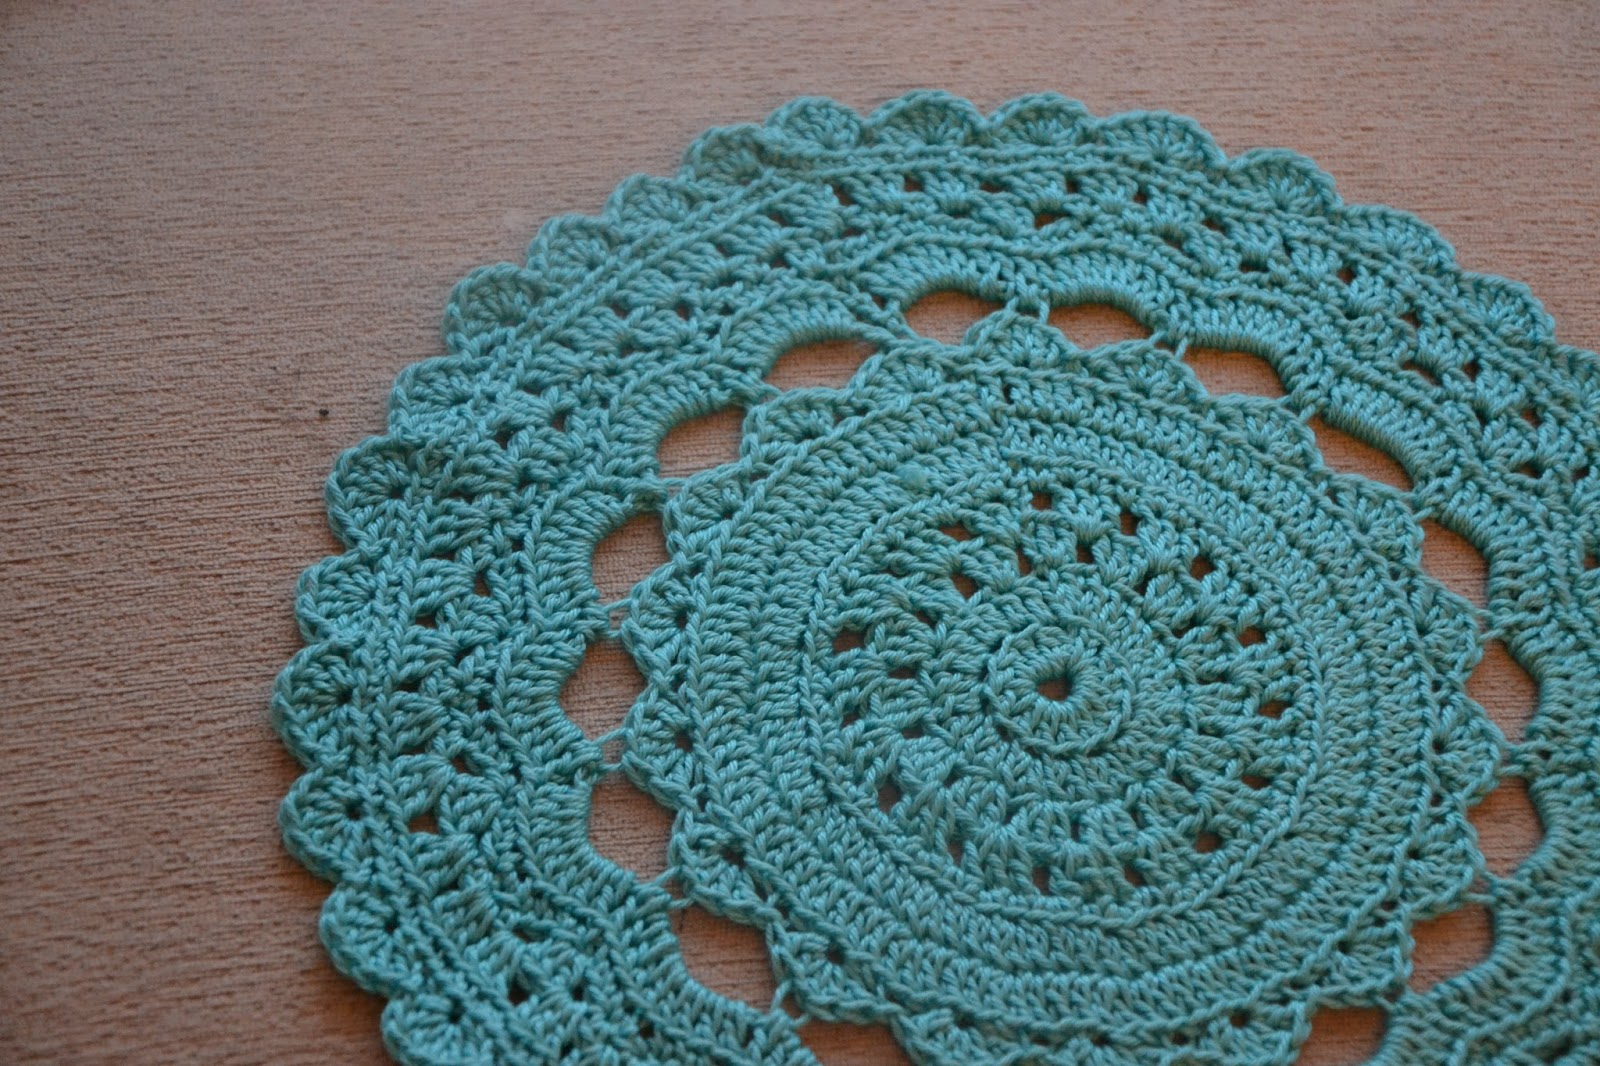 Crocheting A Circle : Tadpegs: Crochet A Circle Cushion With Free Pattern